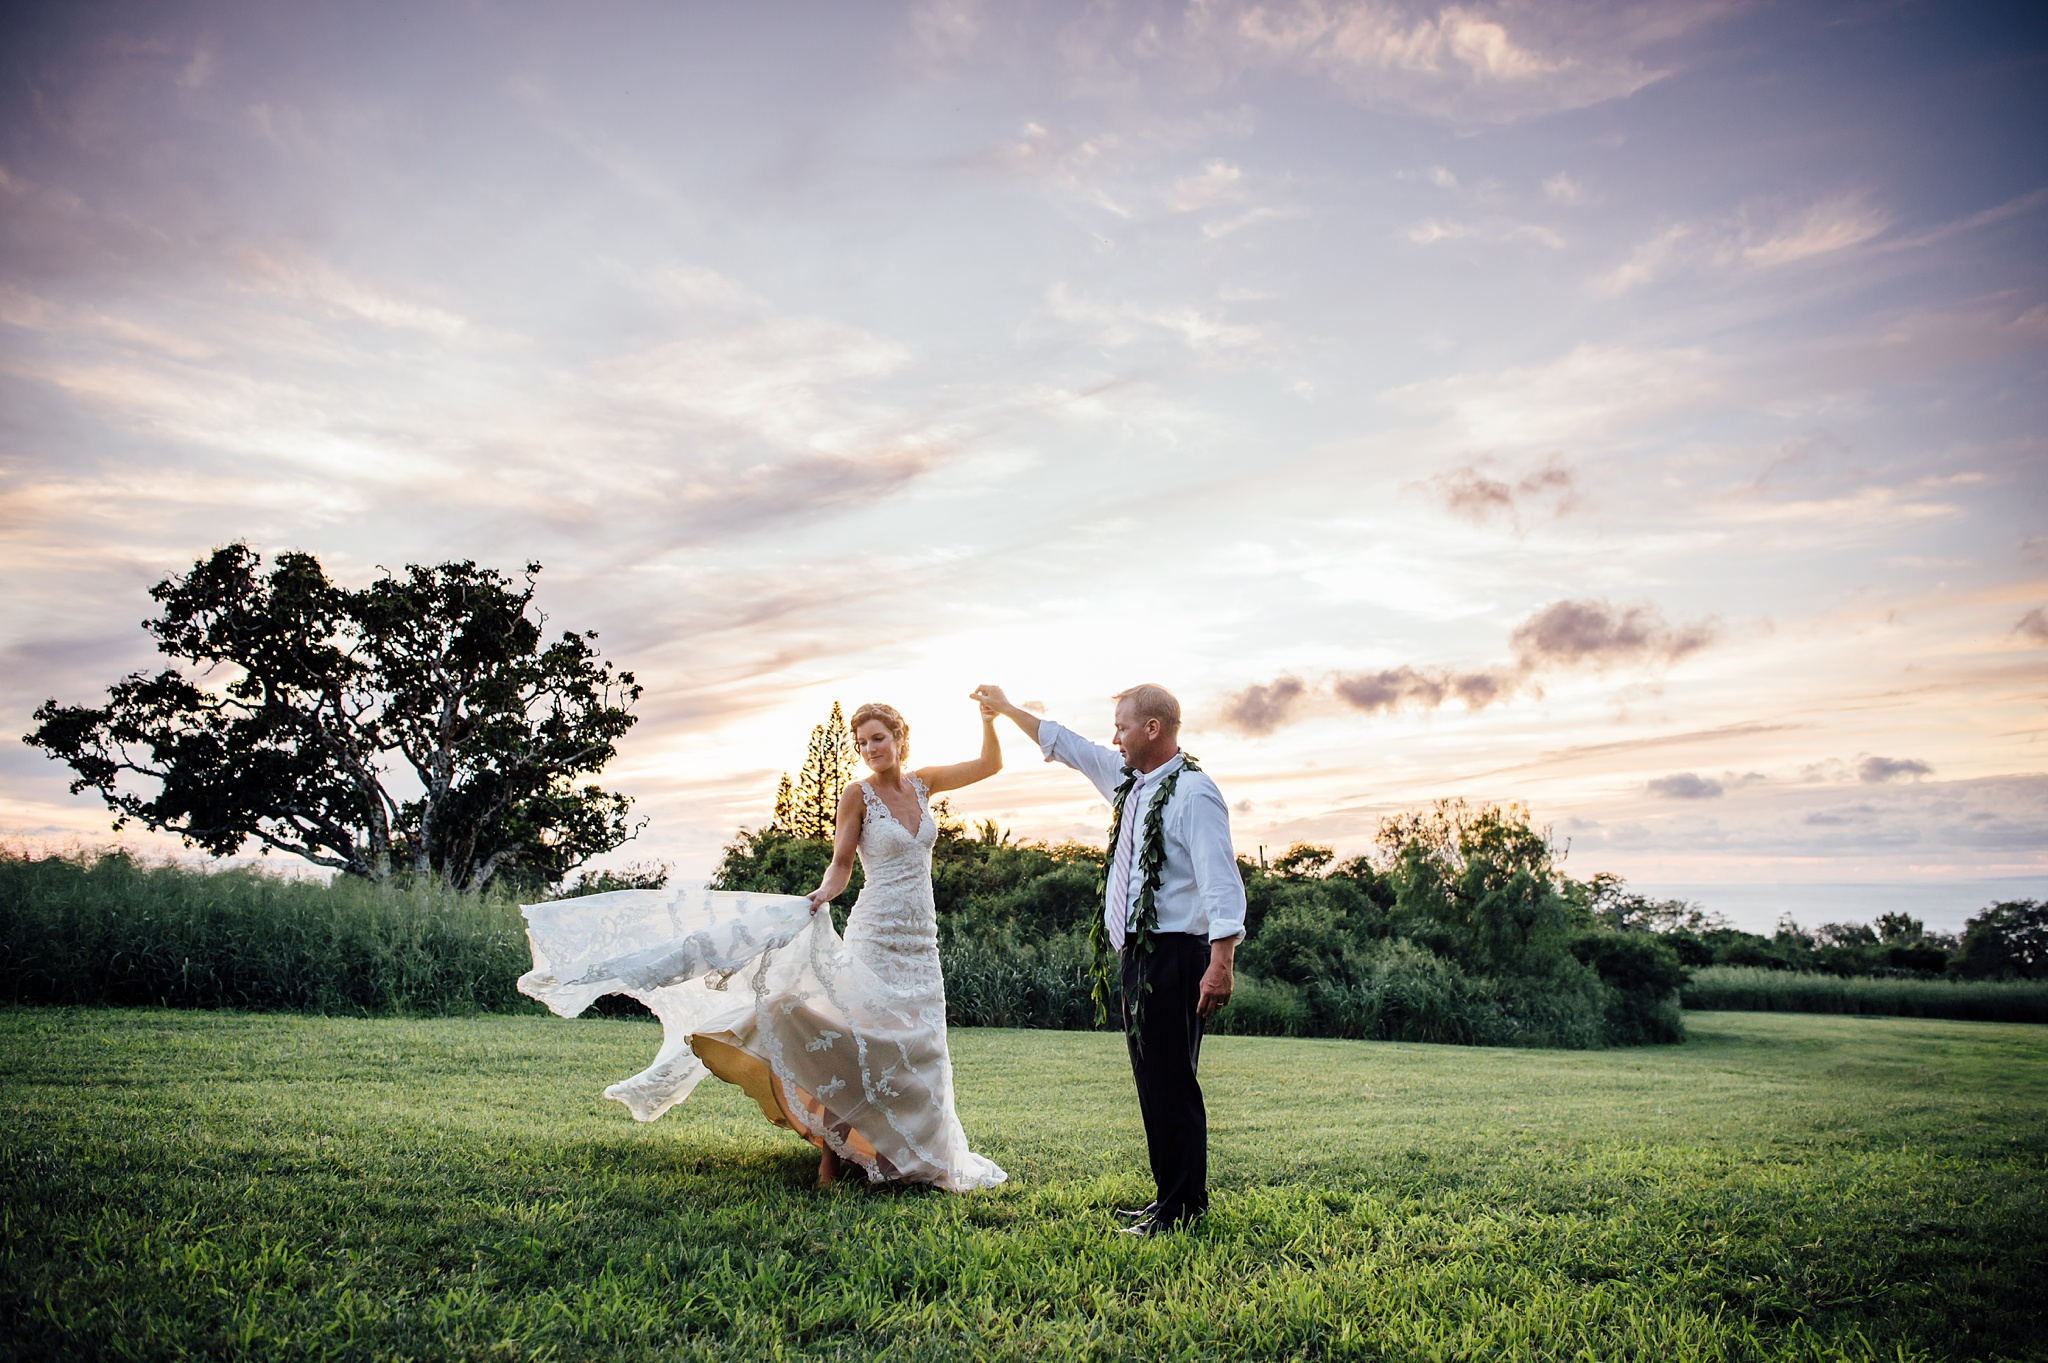 bride and groom dance at sunset, hawaii wedding photographer